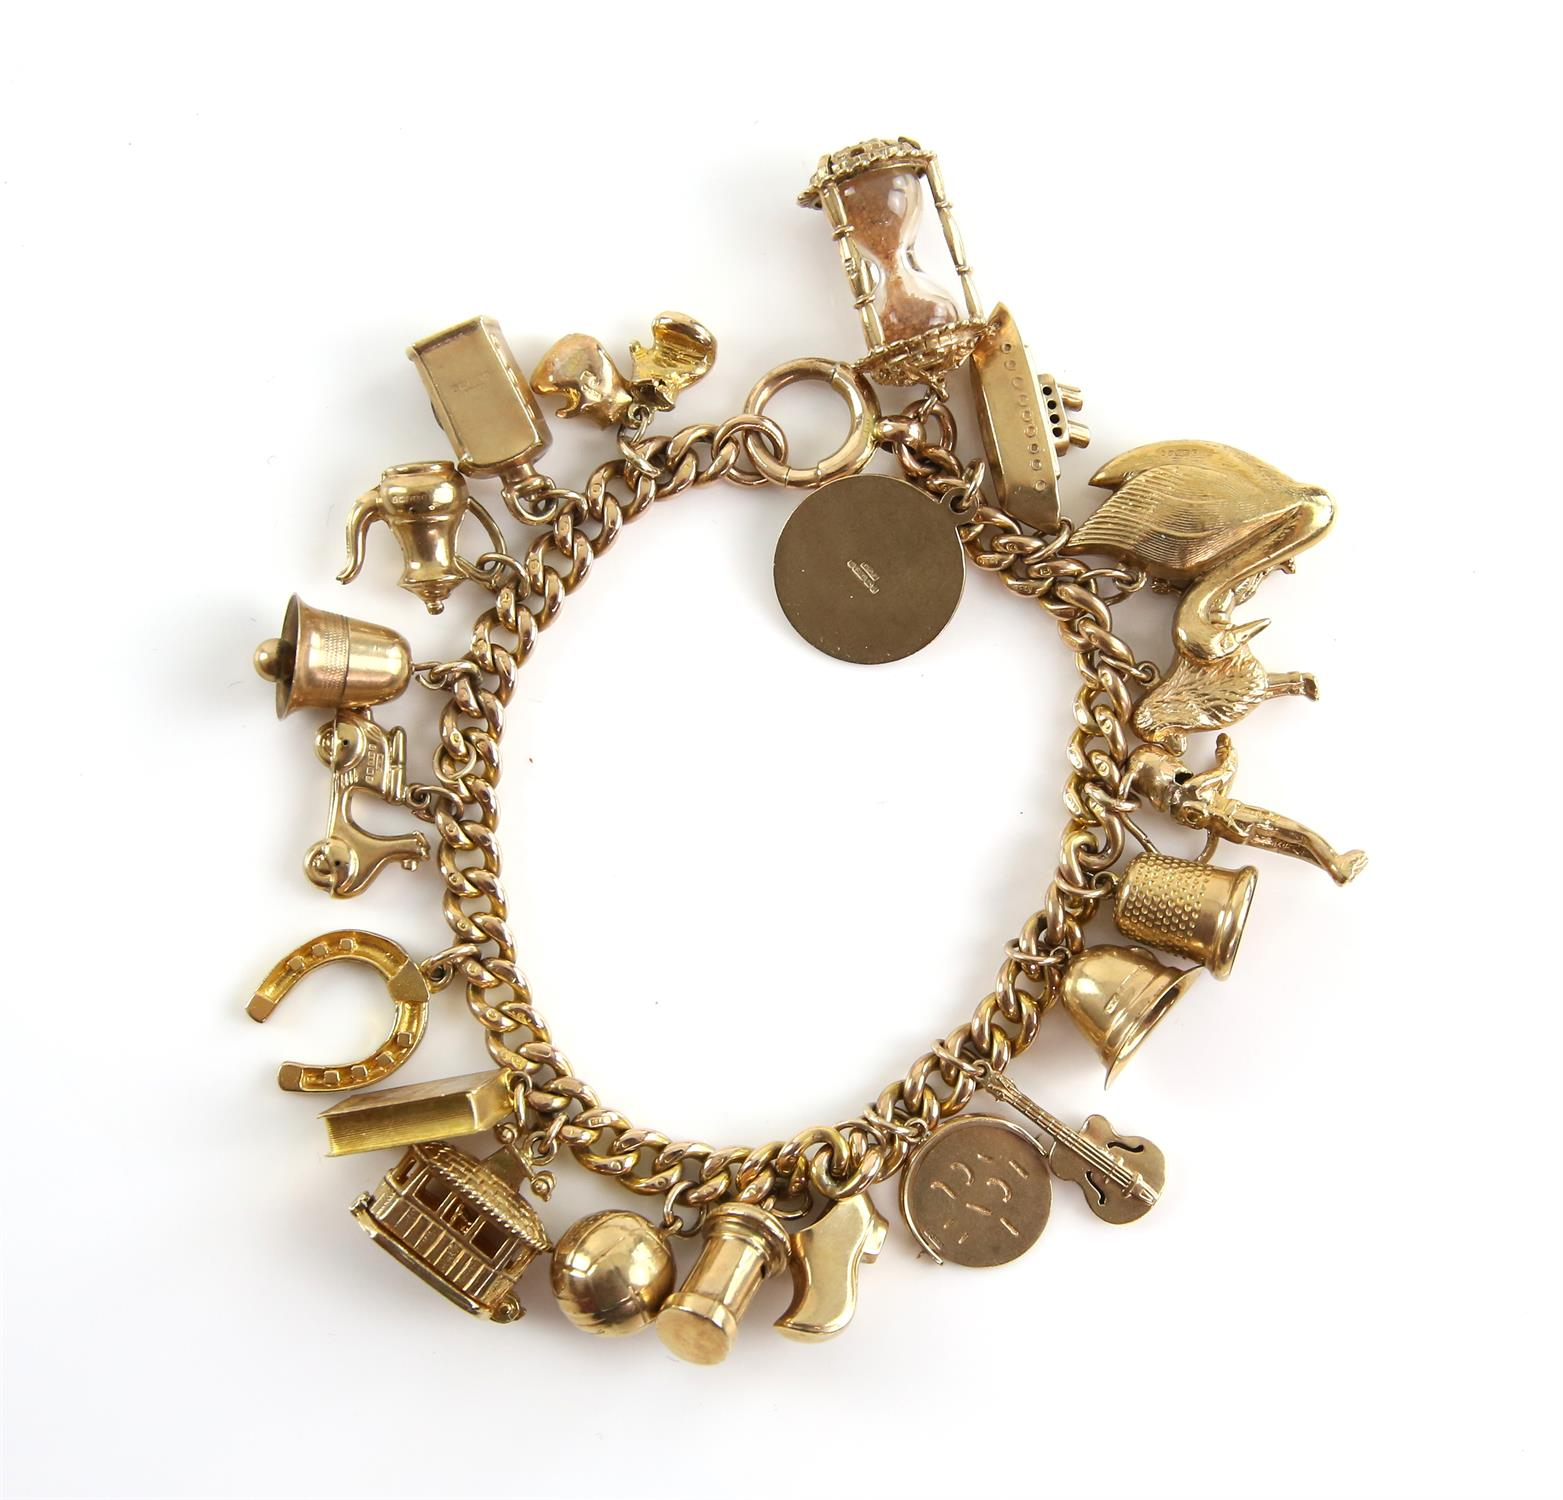 Gold curb link bracelet, large bolt ring clasp, with twenty-one vintage charms attached,